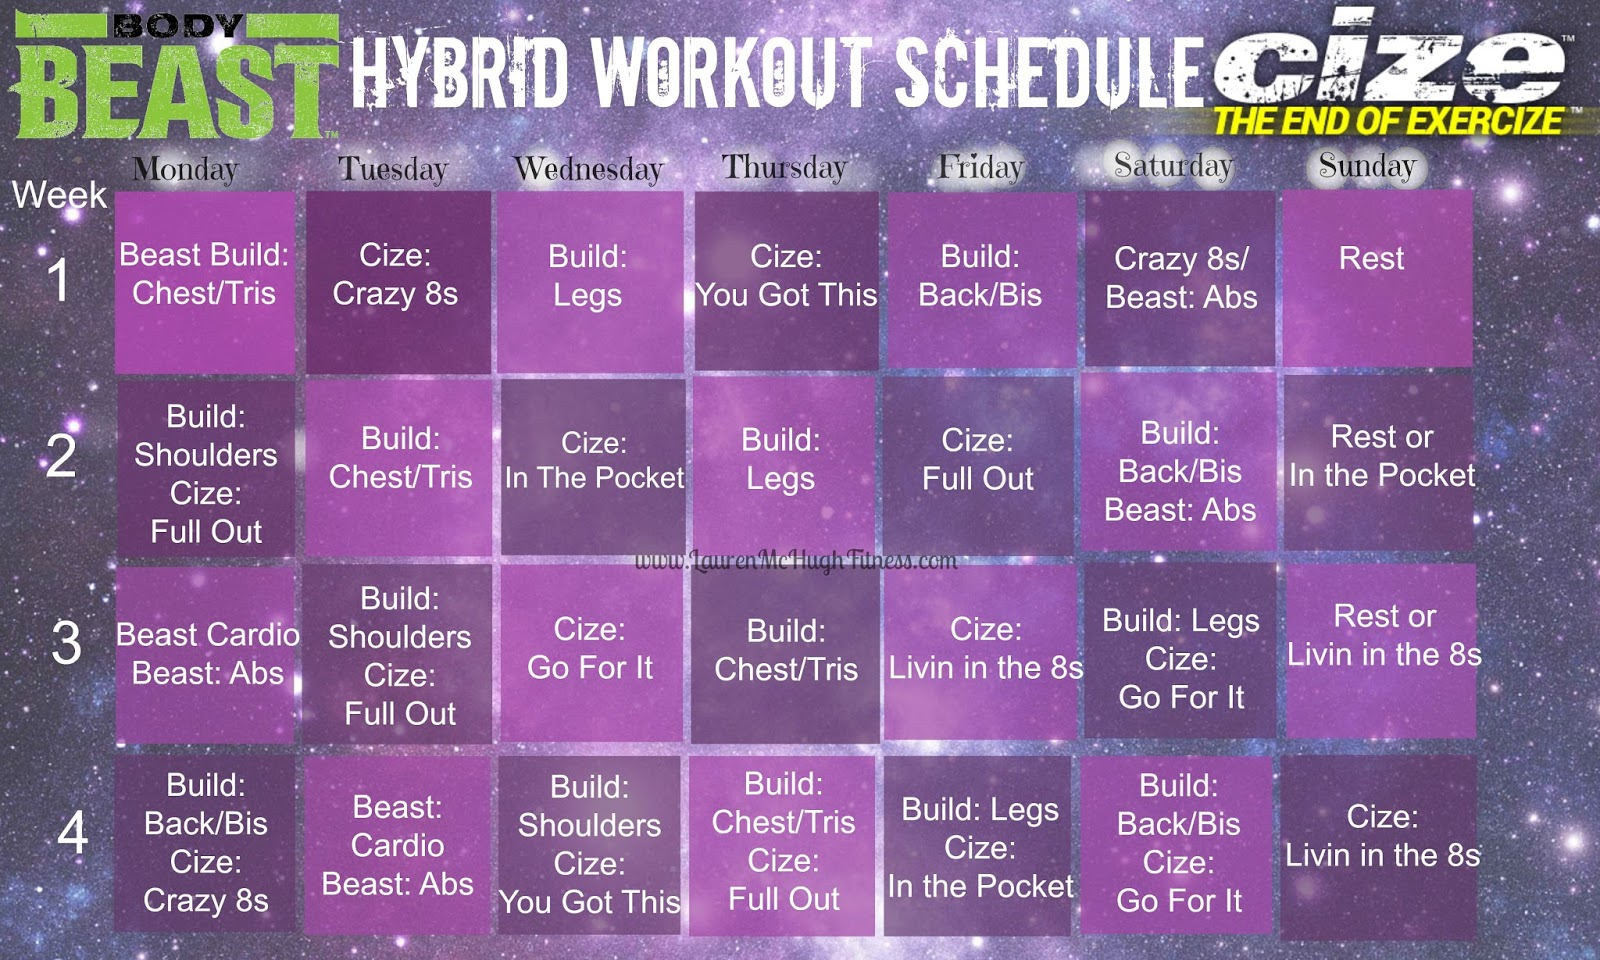 Body Beast and CIZE Hybrid Workout Calendar | Lauren McHugh